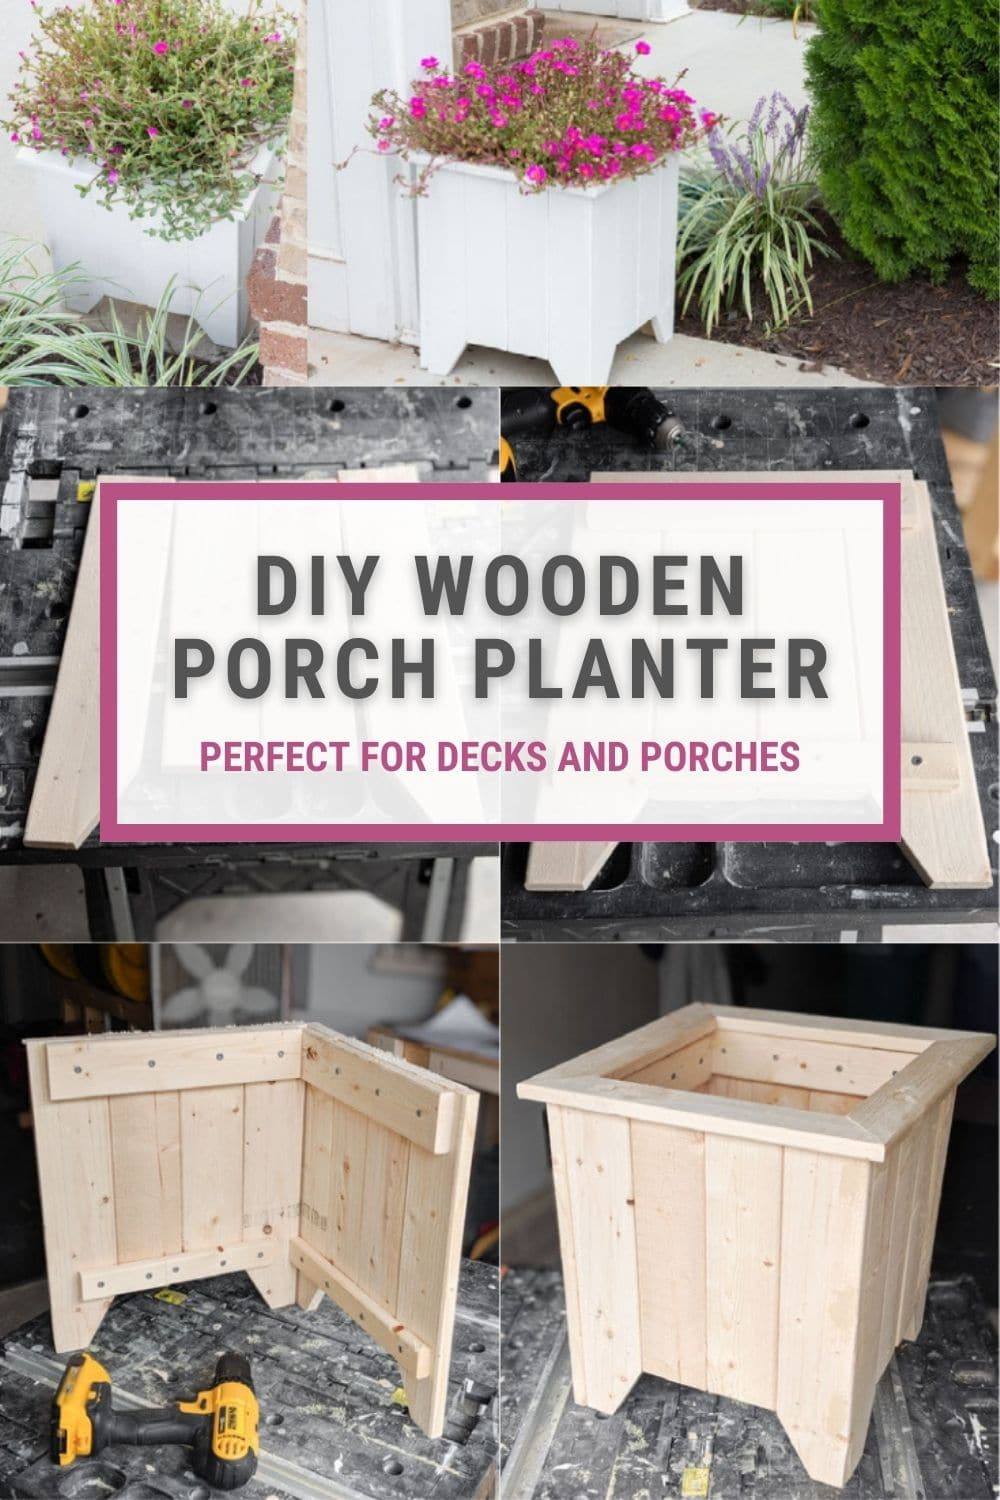 image collage of wooden porch planter box DIY with text DIY Wooden Porch Planter perfect for decks and porches